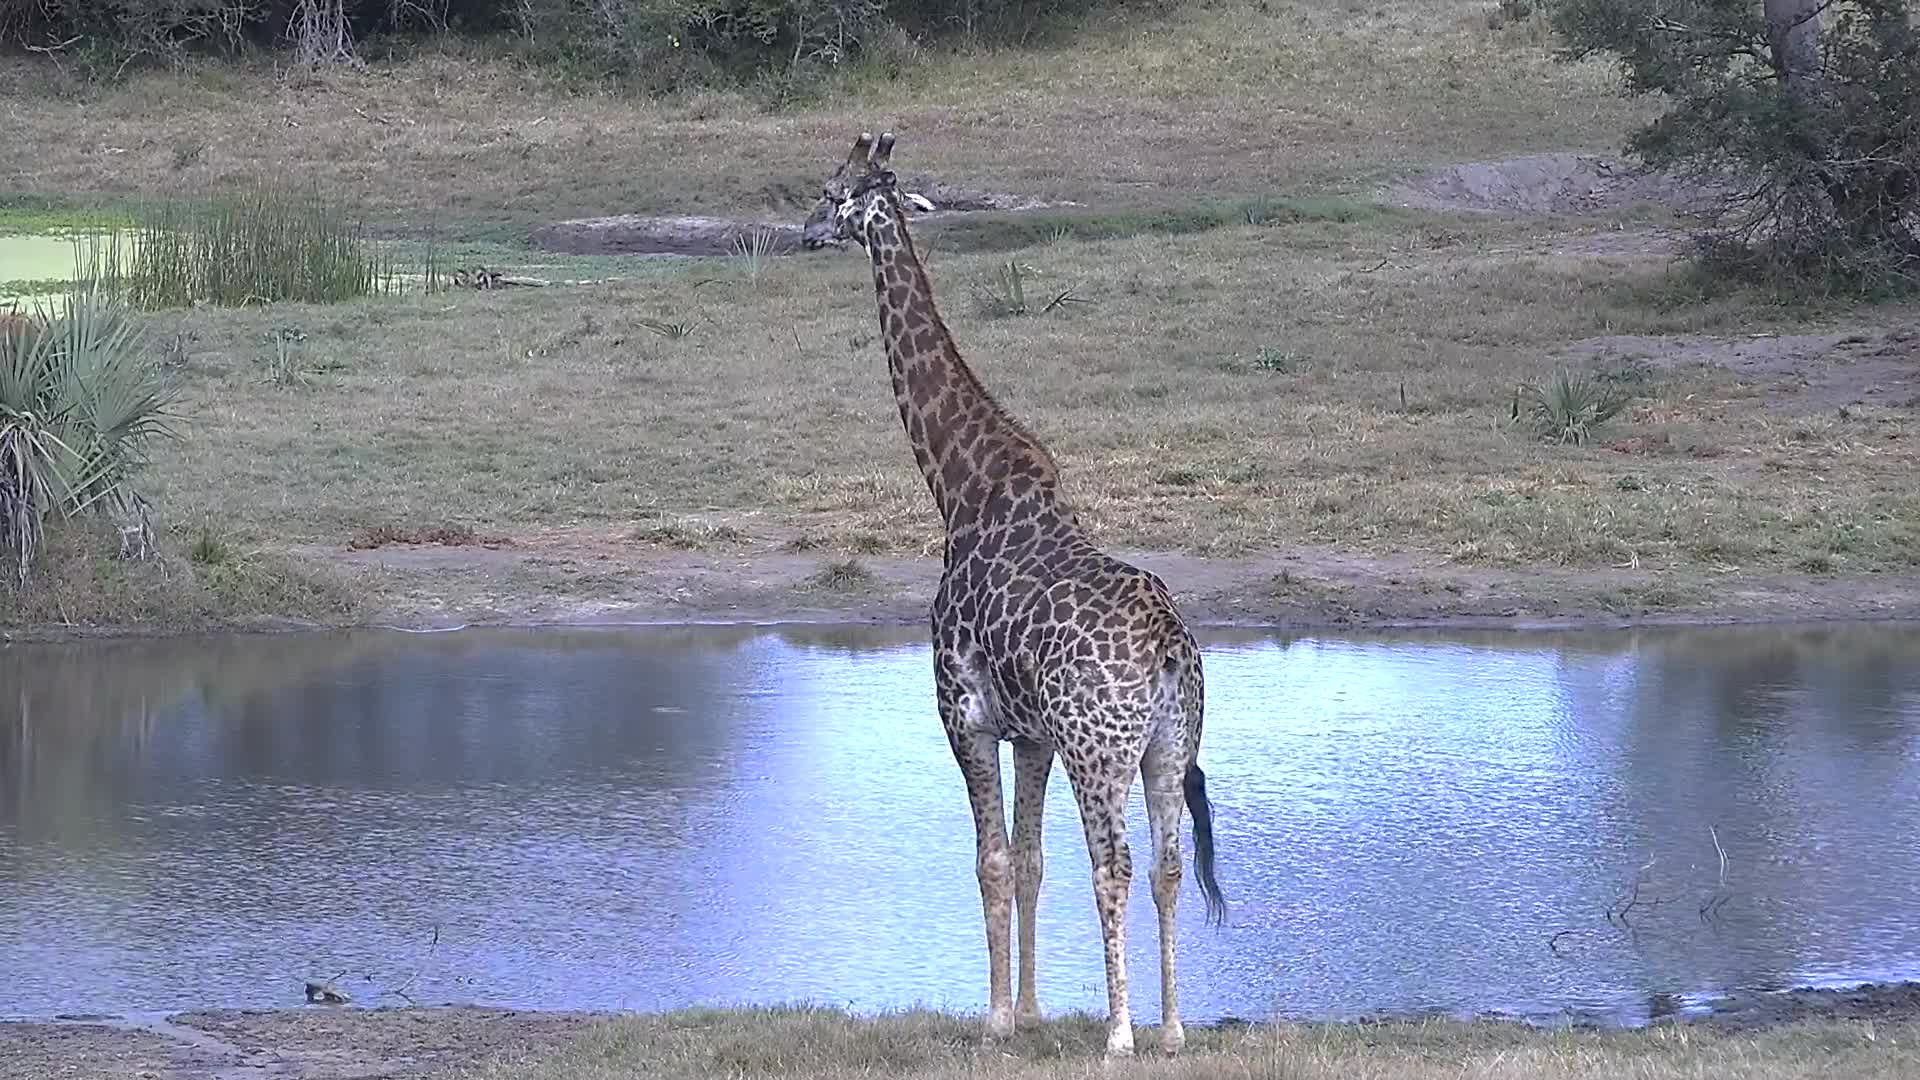 VIDEO: Male Giraffe arriving to have a drink